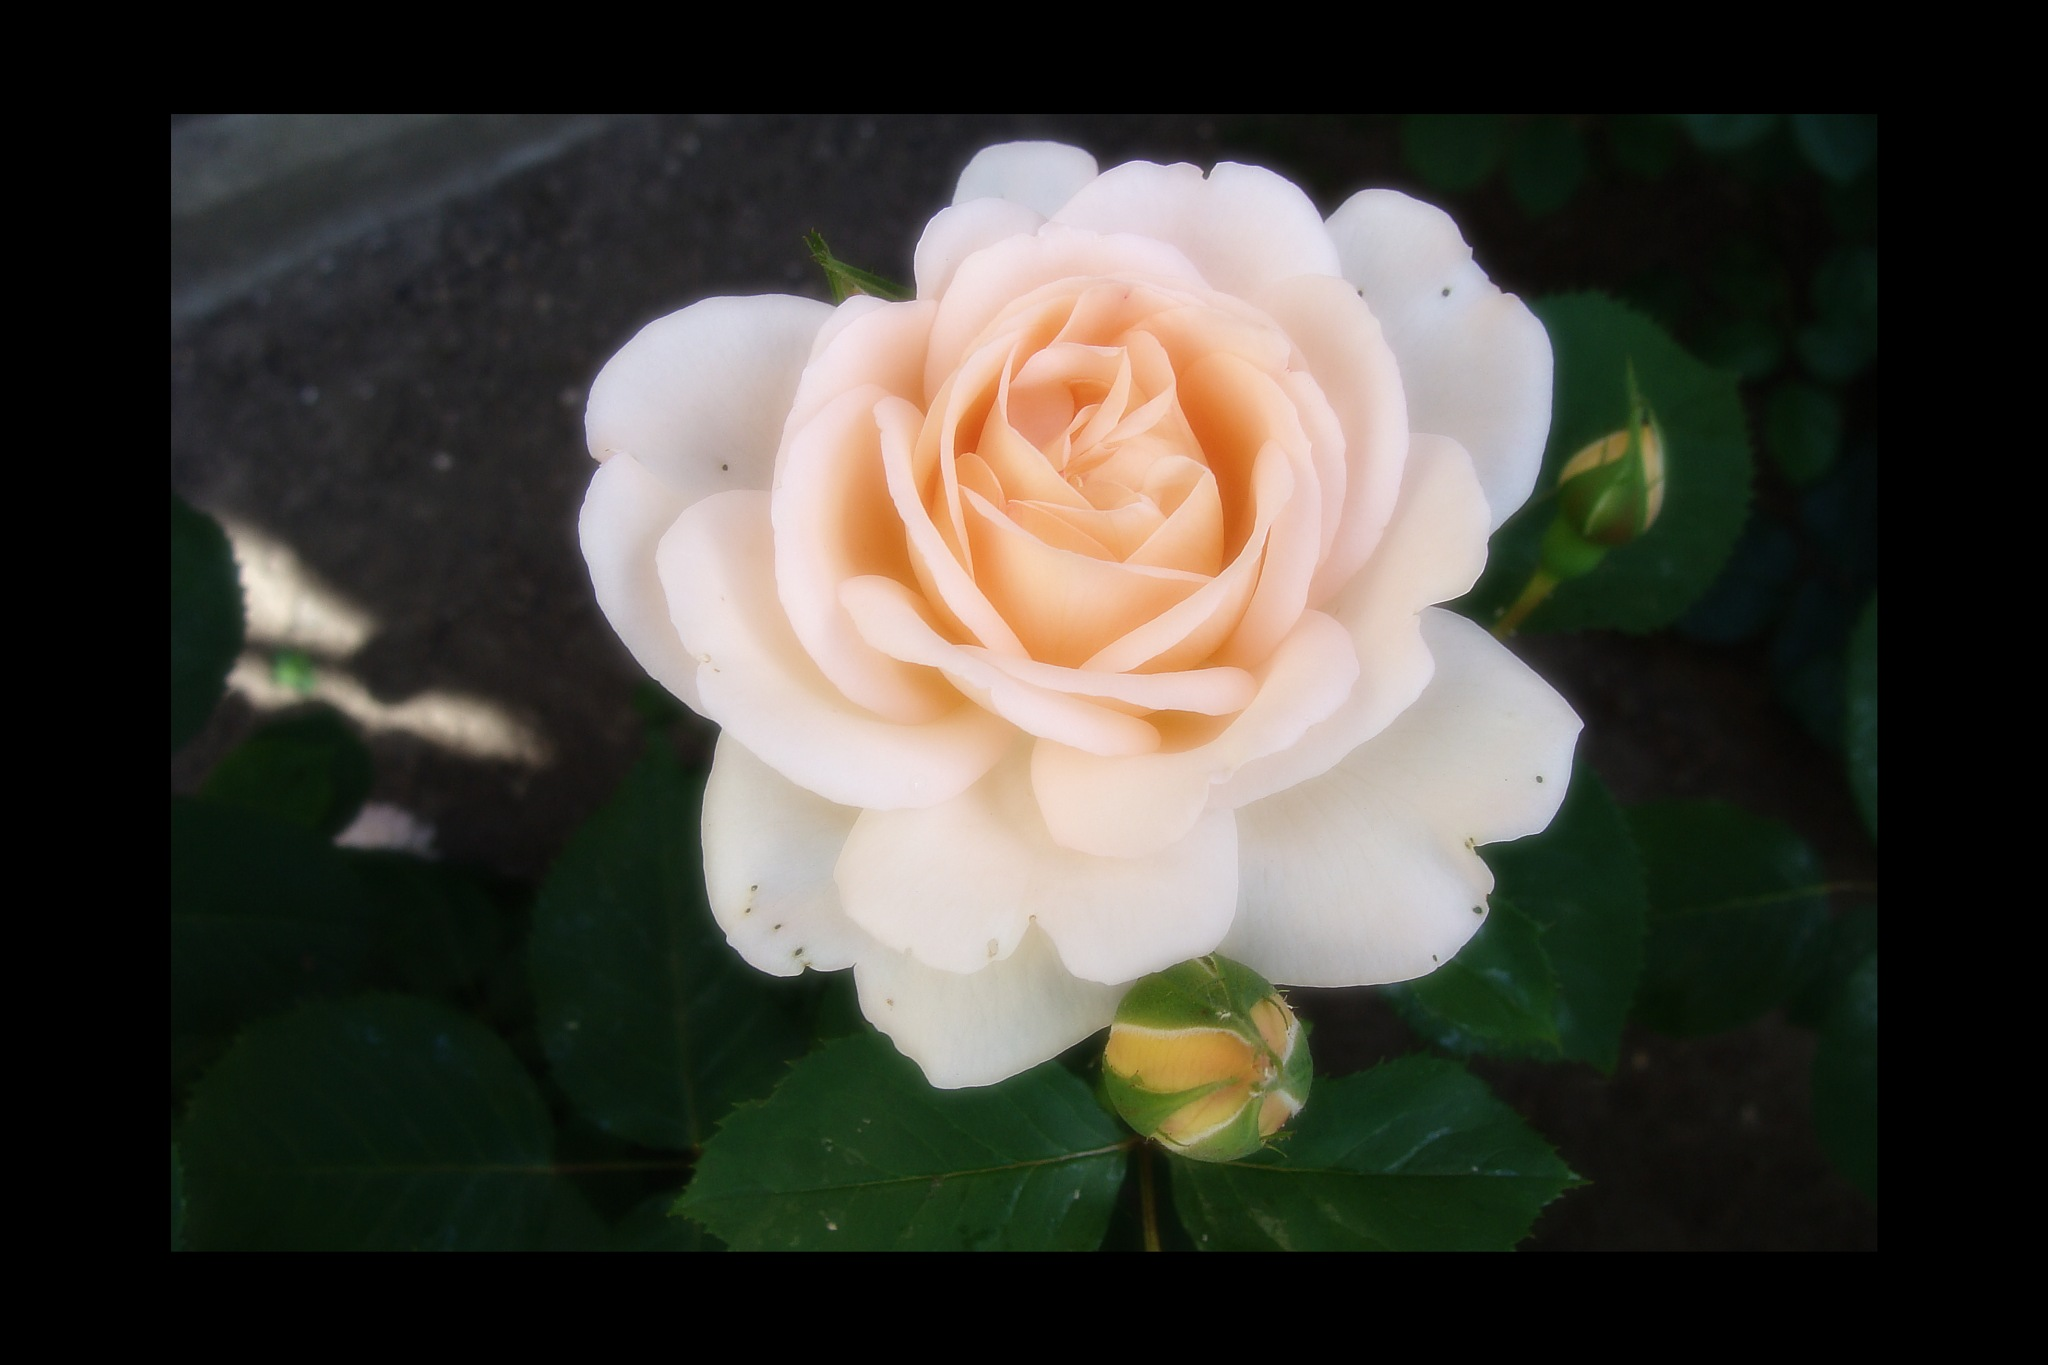 afternoon rose by Terry Dunn